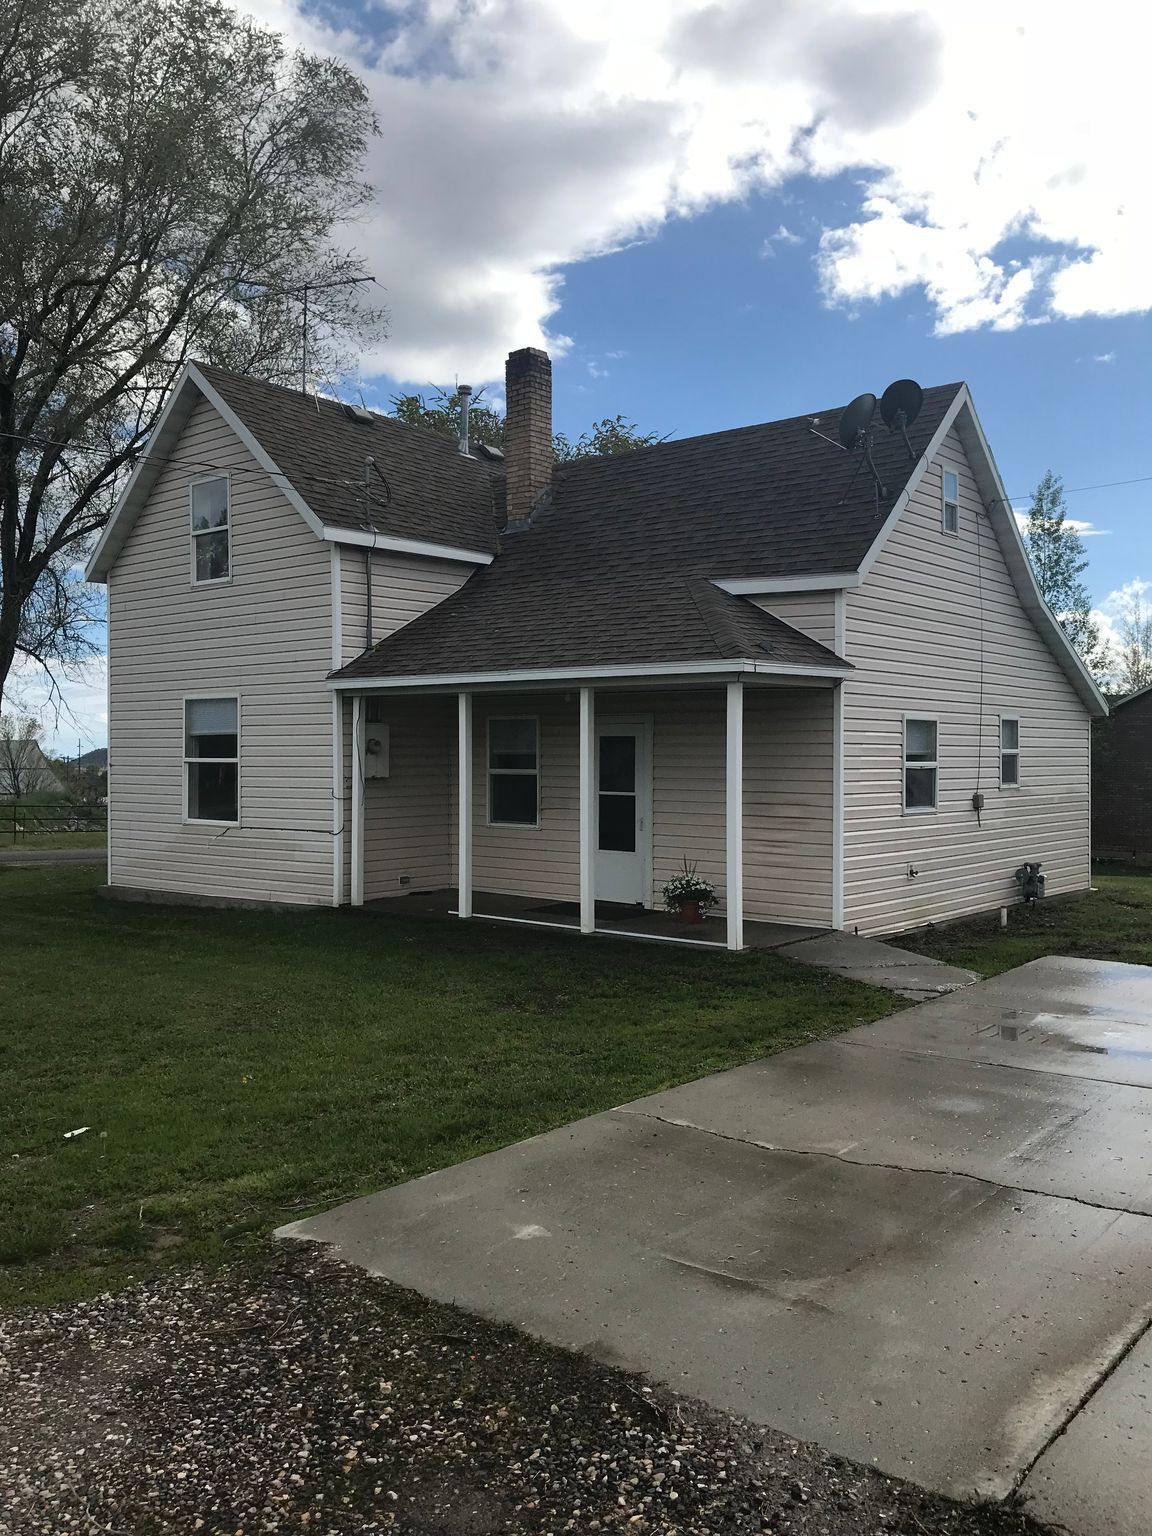 285 E 100 N, Fairview, UT 84629 - 3 Bed, 2 Bath Single-Family Home - 17  Photos | Trulia